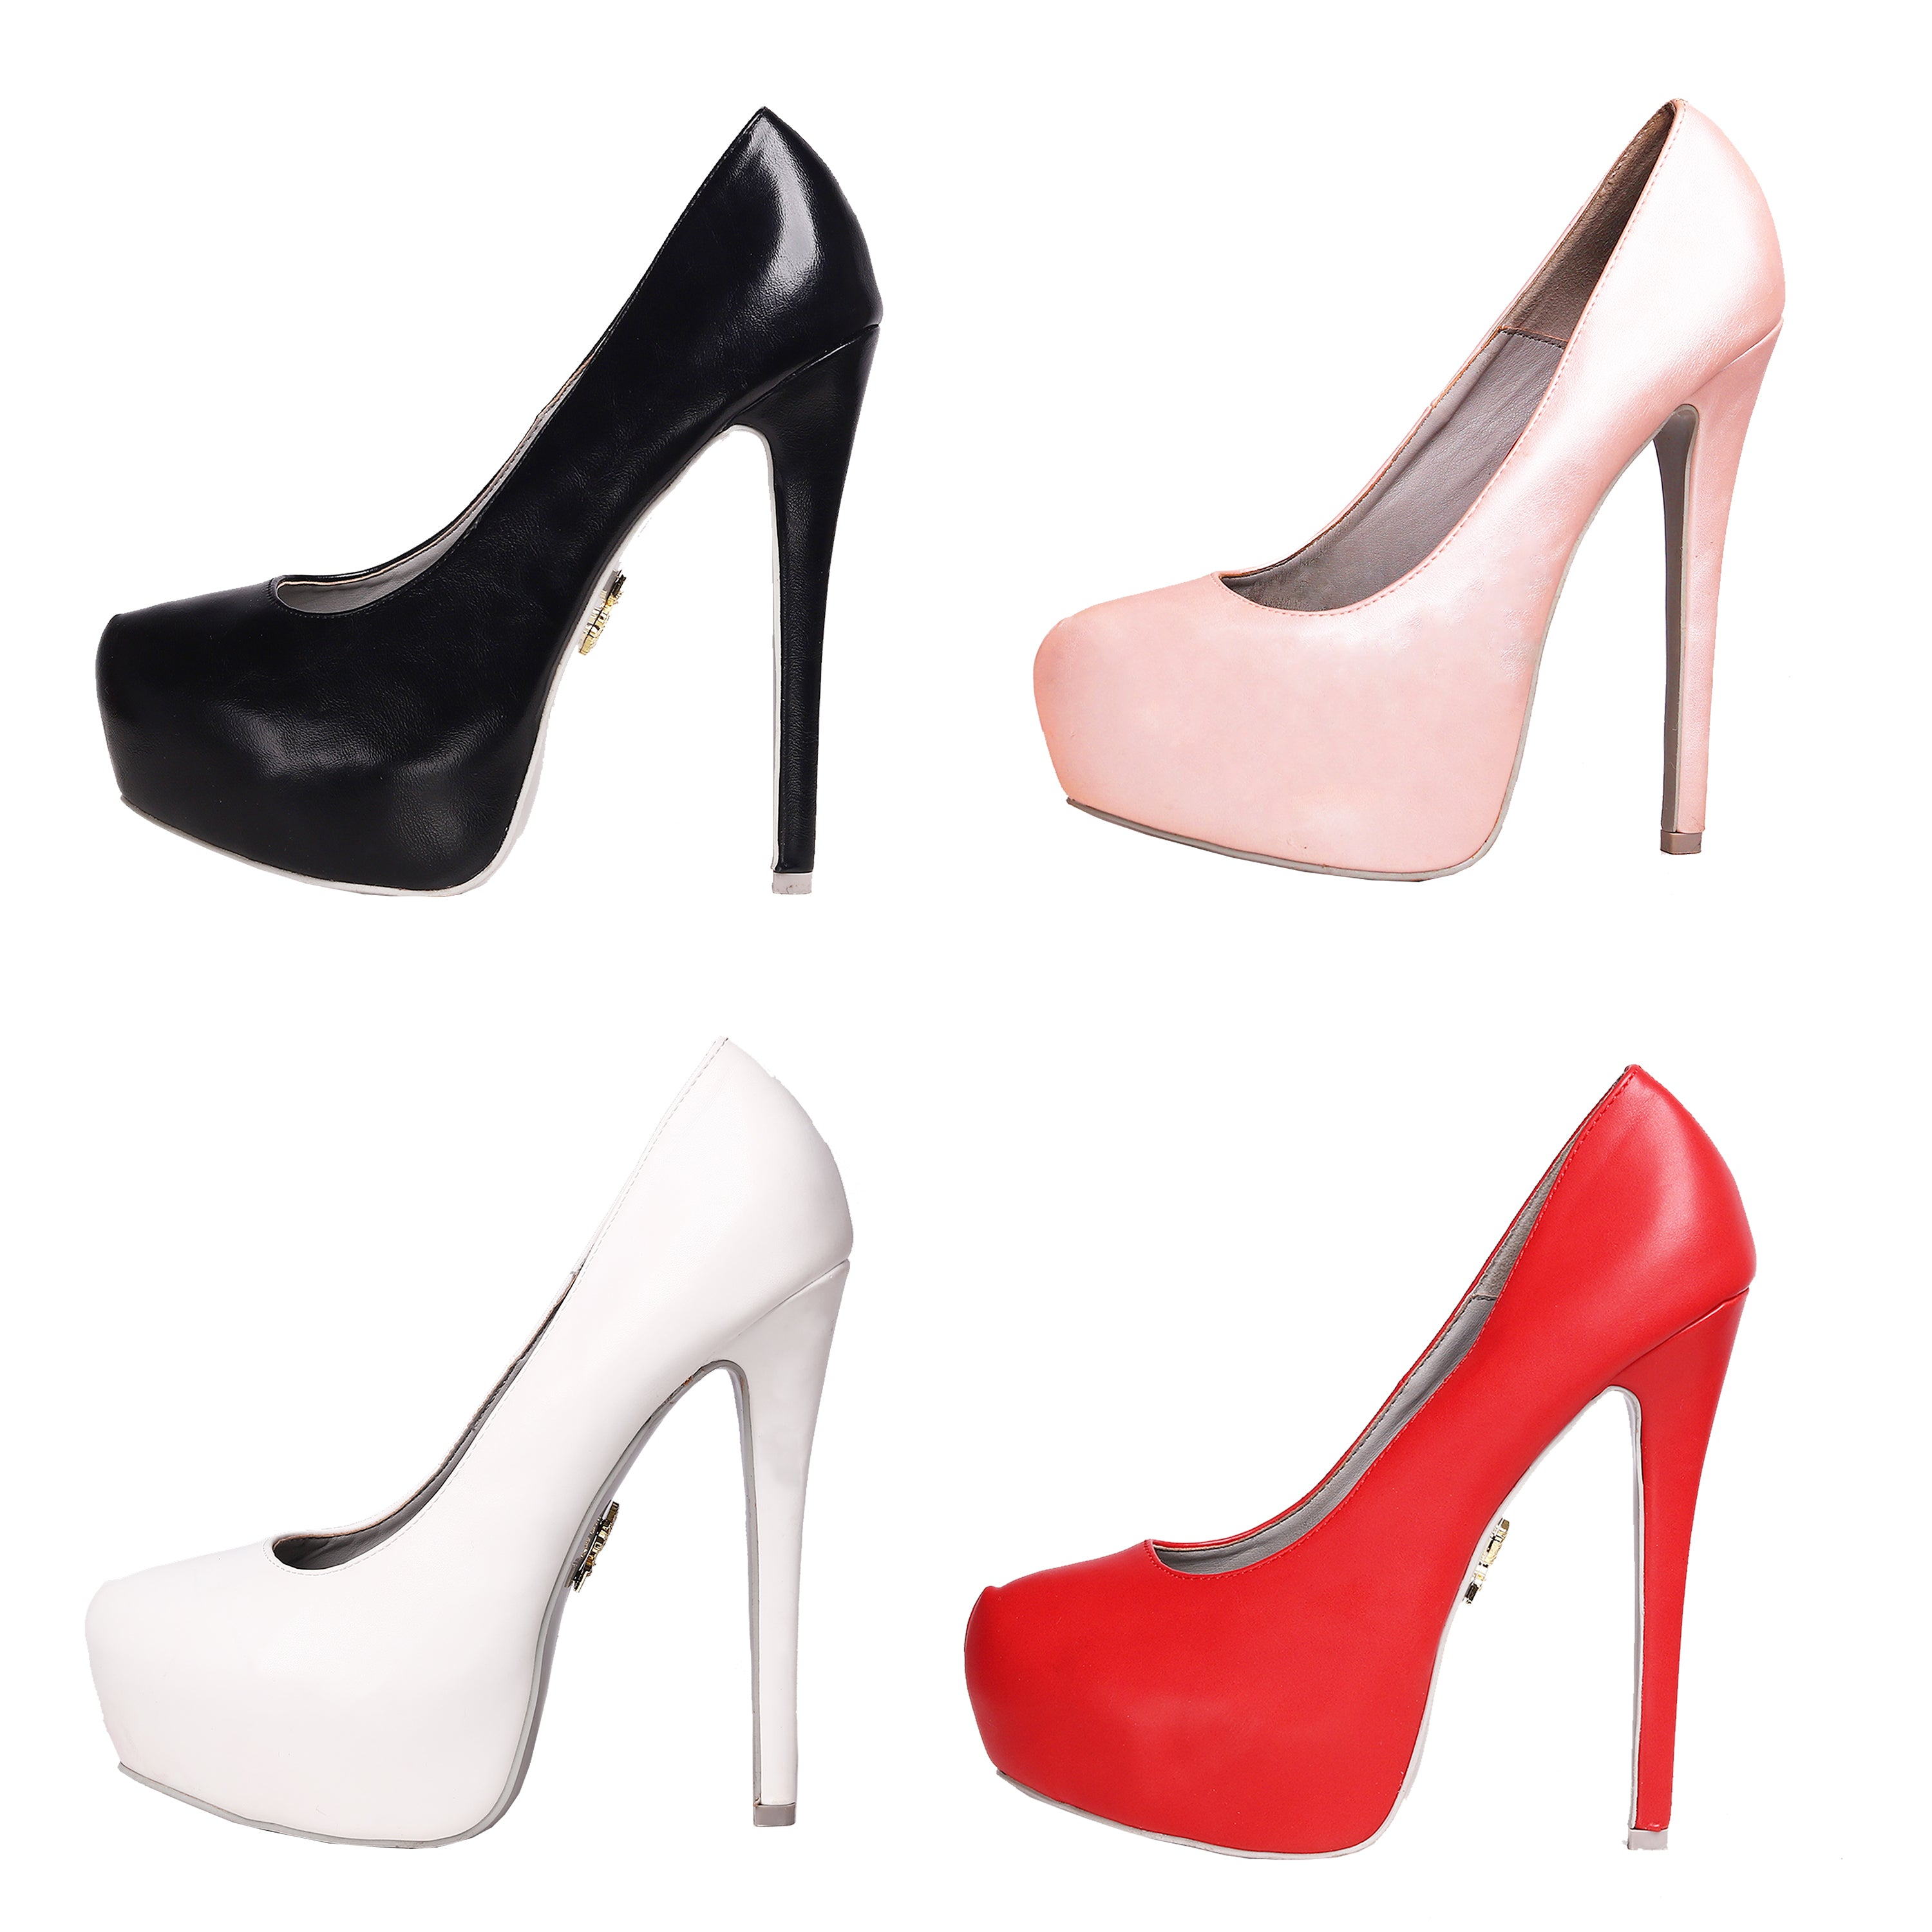 Sexiness of Pumps